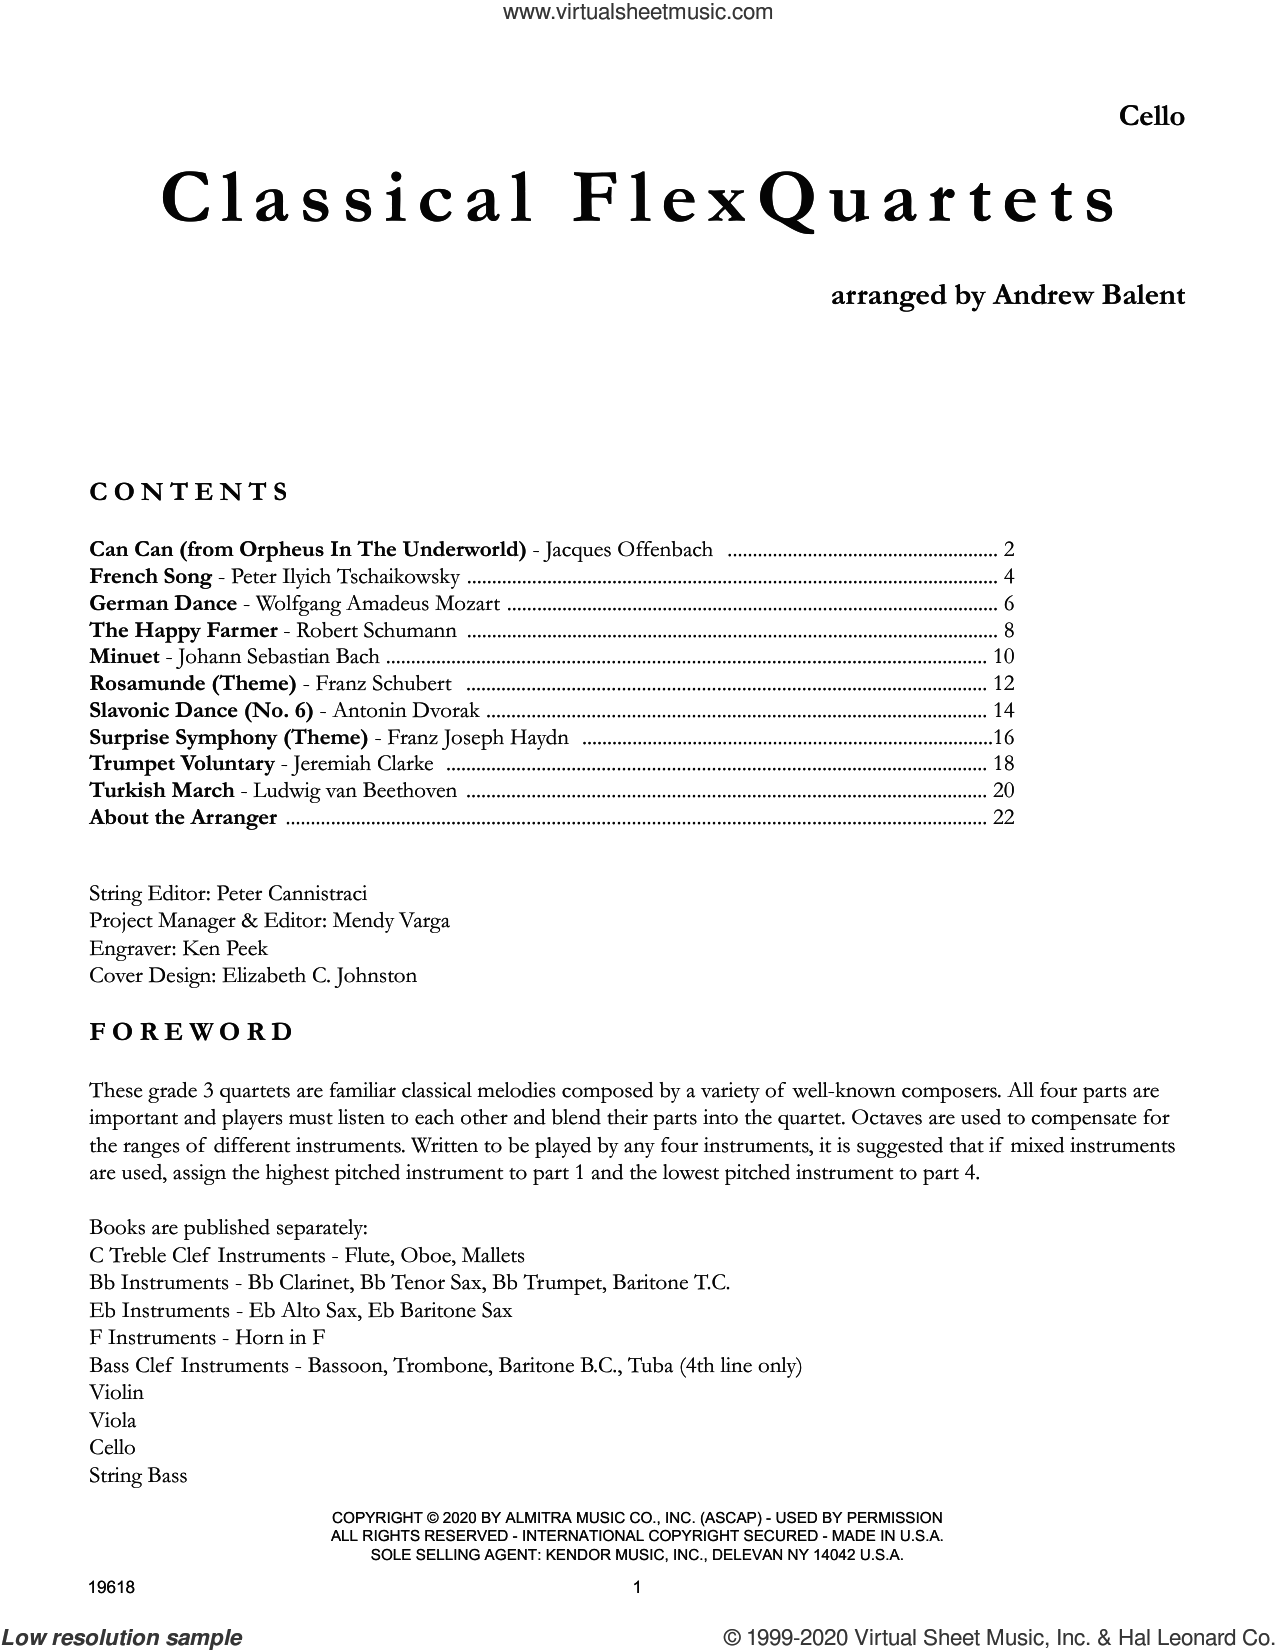 Classical Flexquartets (arr. Andrew Balent) - Cello sheet music for string orchestra  and Andrew Balent, classical score, intermediate skill level